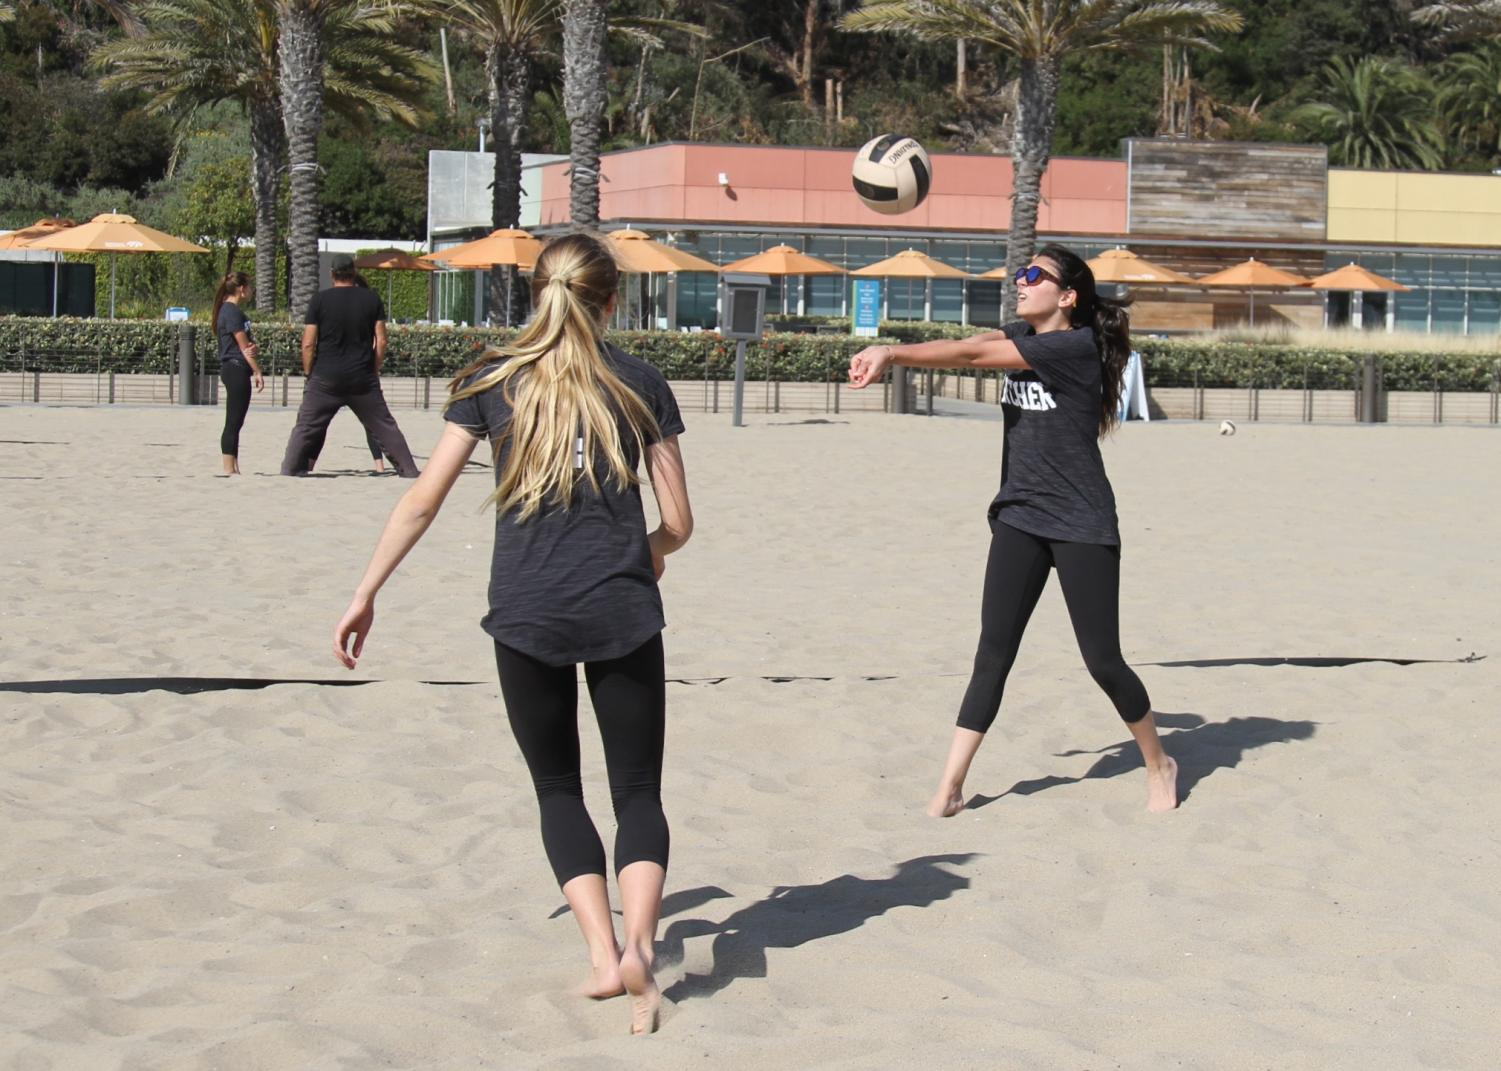 Gillian Varnum '20 and Yasi  Soufer '19 play a match.  The match took place at the Annenberg Community Beach House.